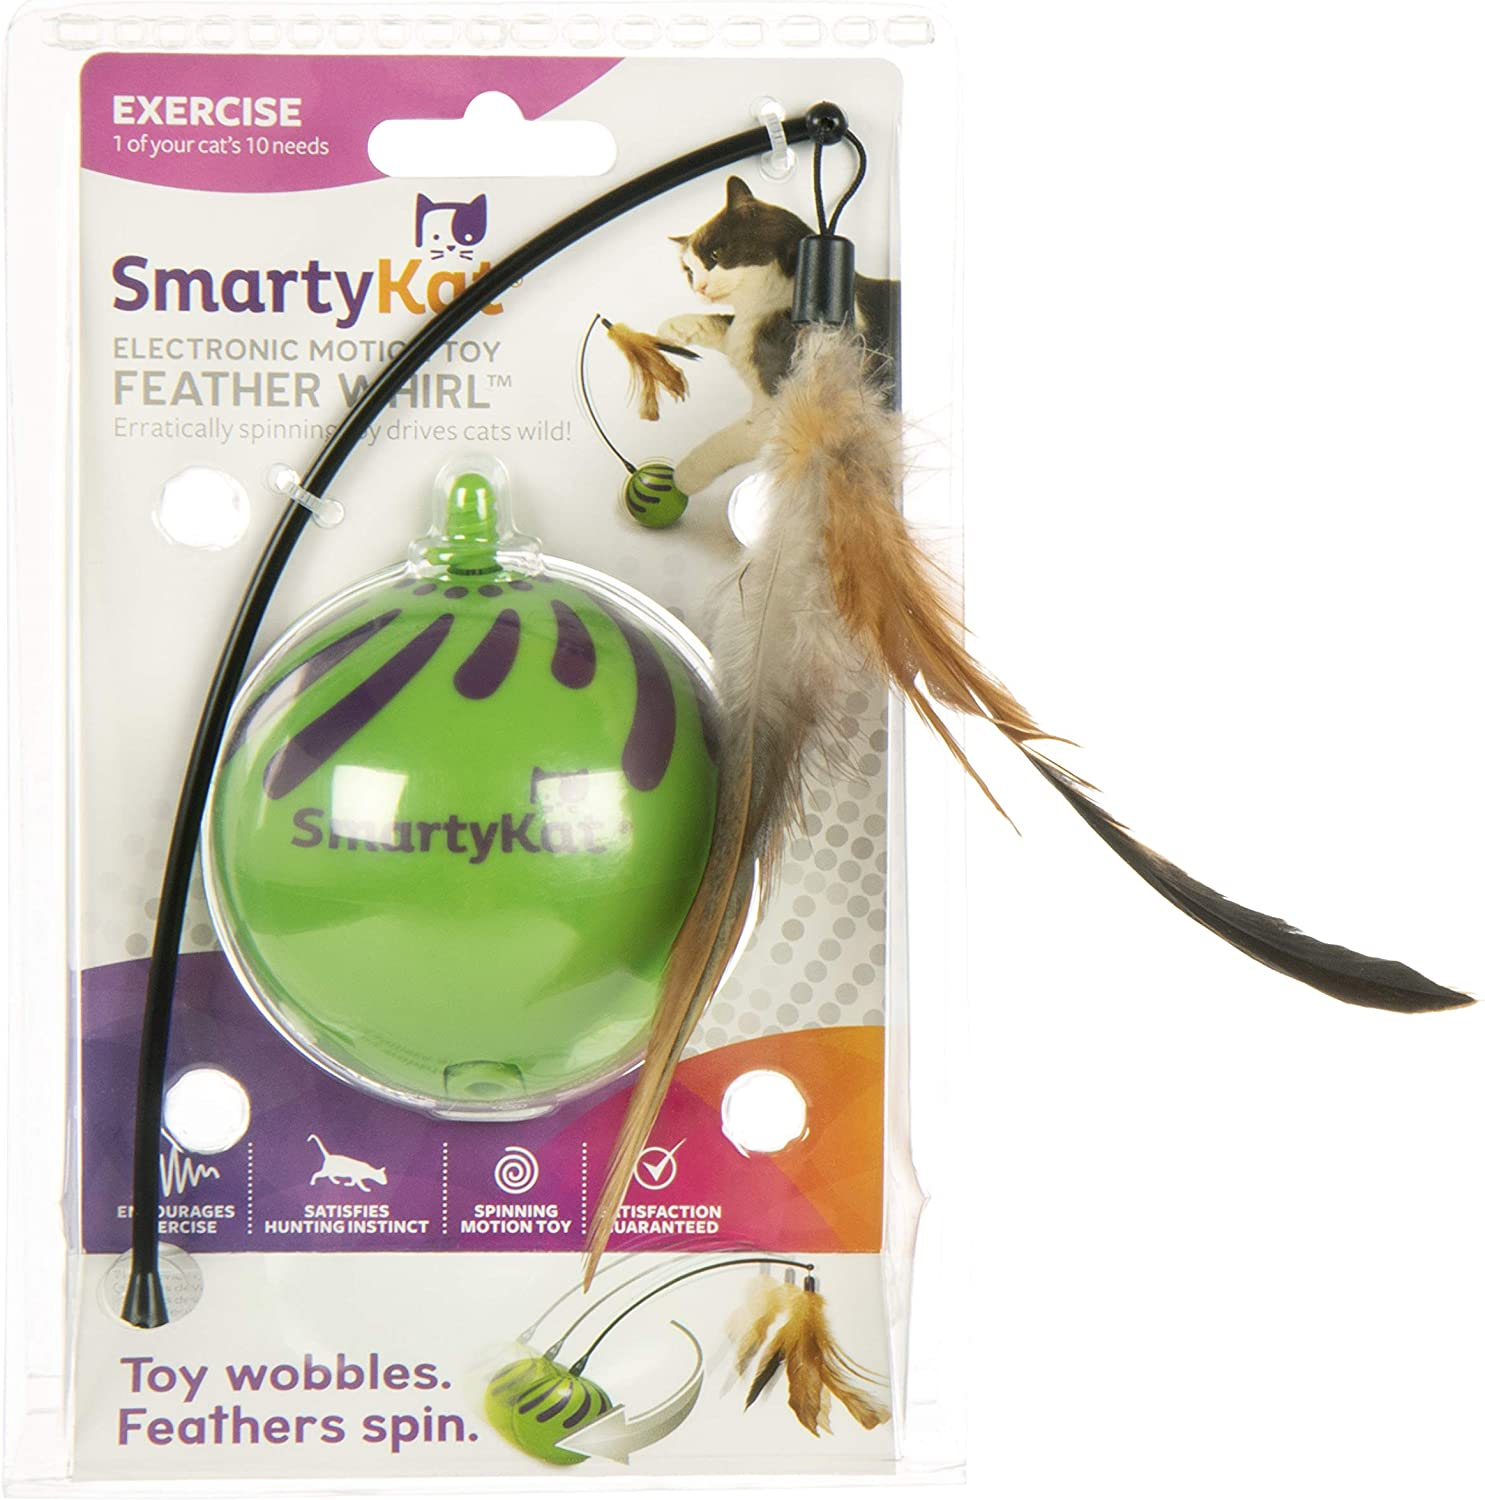 SmartyKat Feather Whirl Electronic Motion Cat Toy, As Seen On TV (9621), green : Pet Supplies